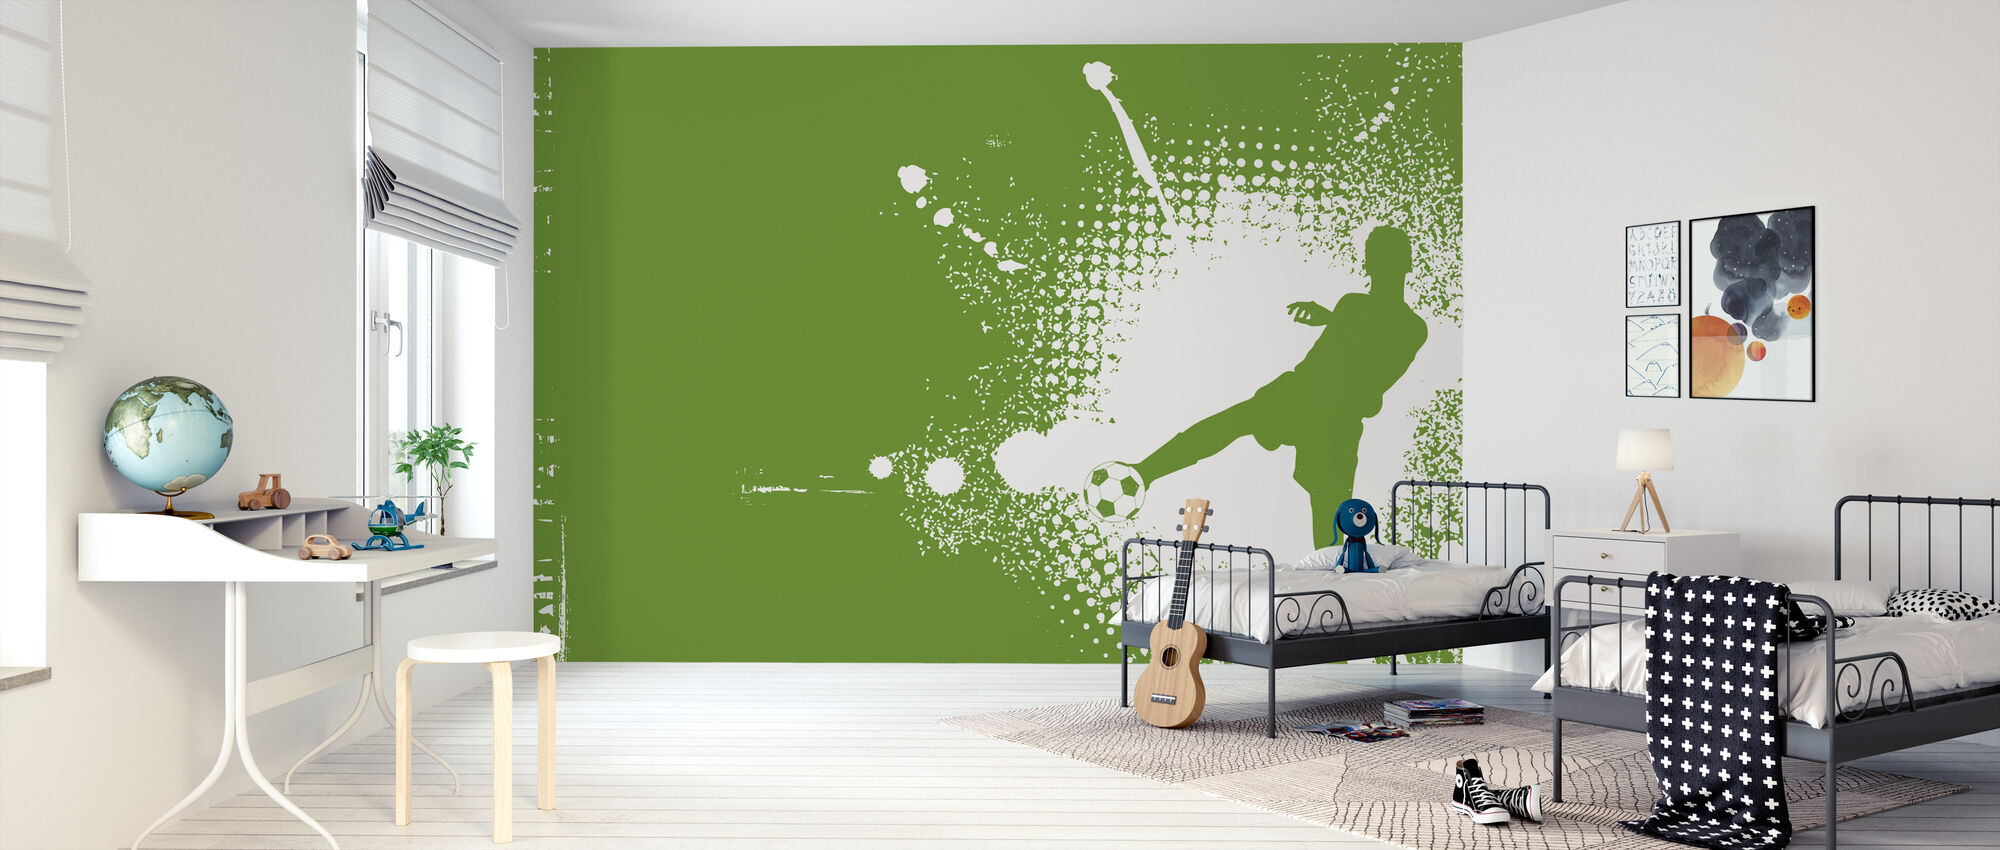 Soccer Player Green - Wallpaper - Kids Room